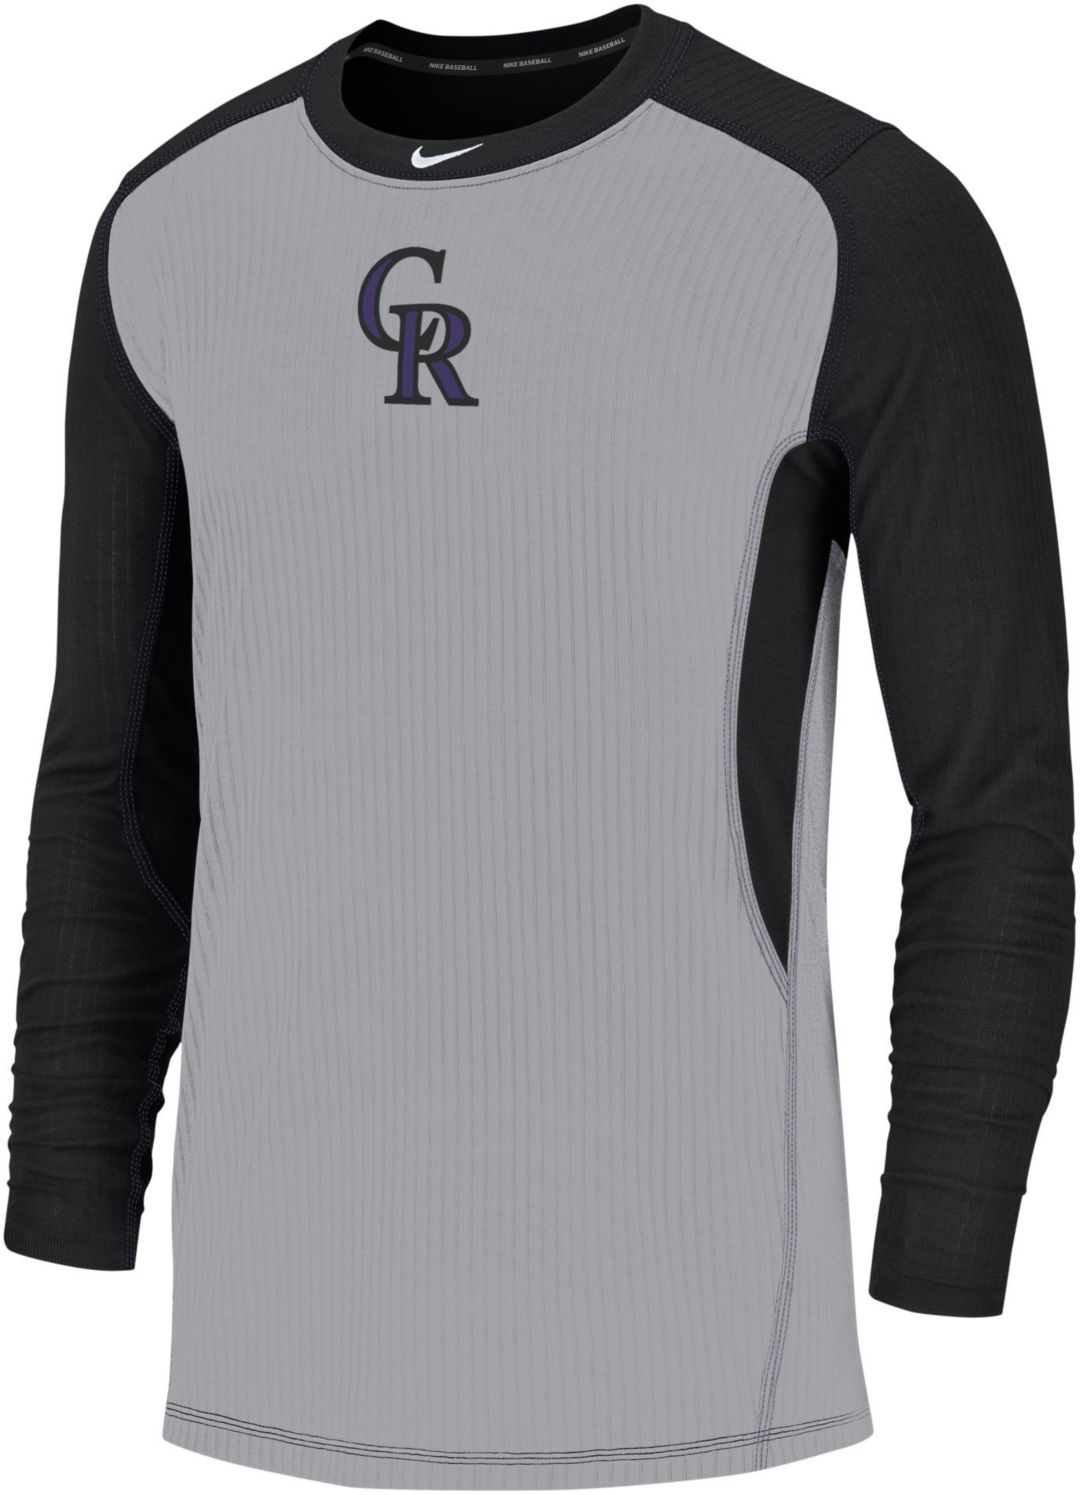 5ba60b4004 Nike Men's Colorado Rockies Authentic Collection Dri-FIT Long Sleeve Top